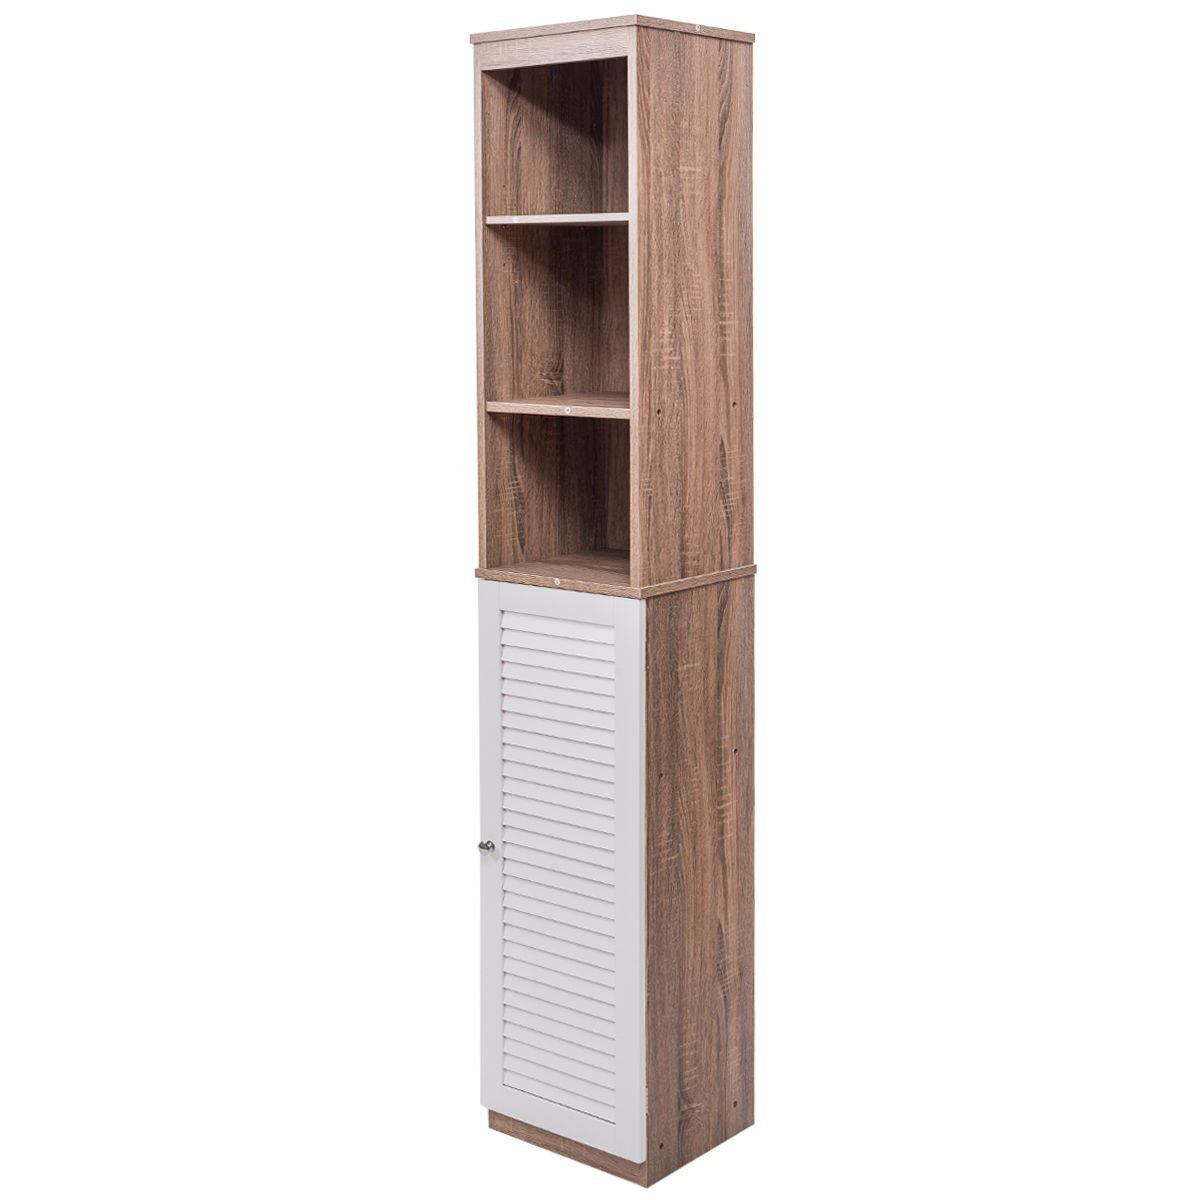 "71"" Tall Wood Tower Bathroom Bedroom Shelf Organizer Storage Cabinet Louvered"